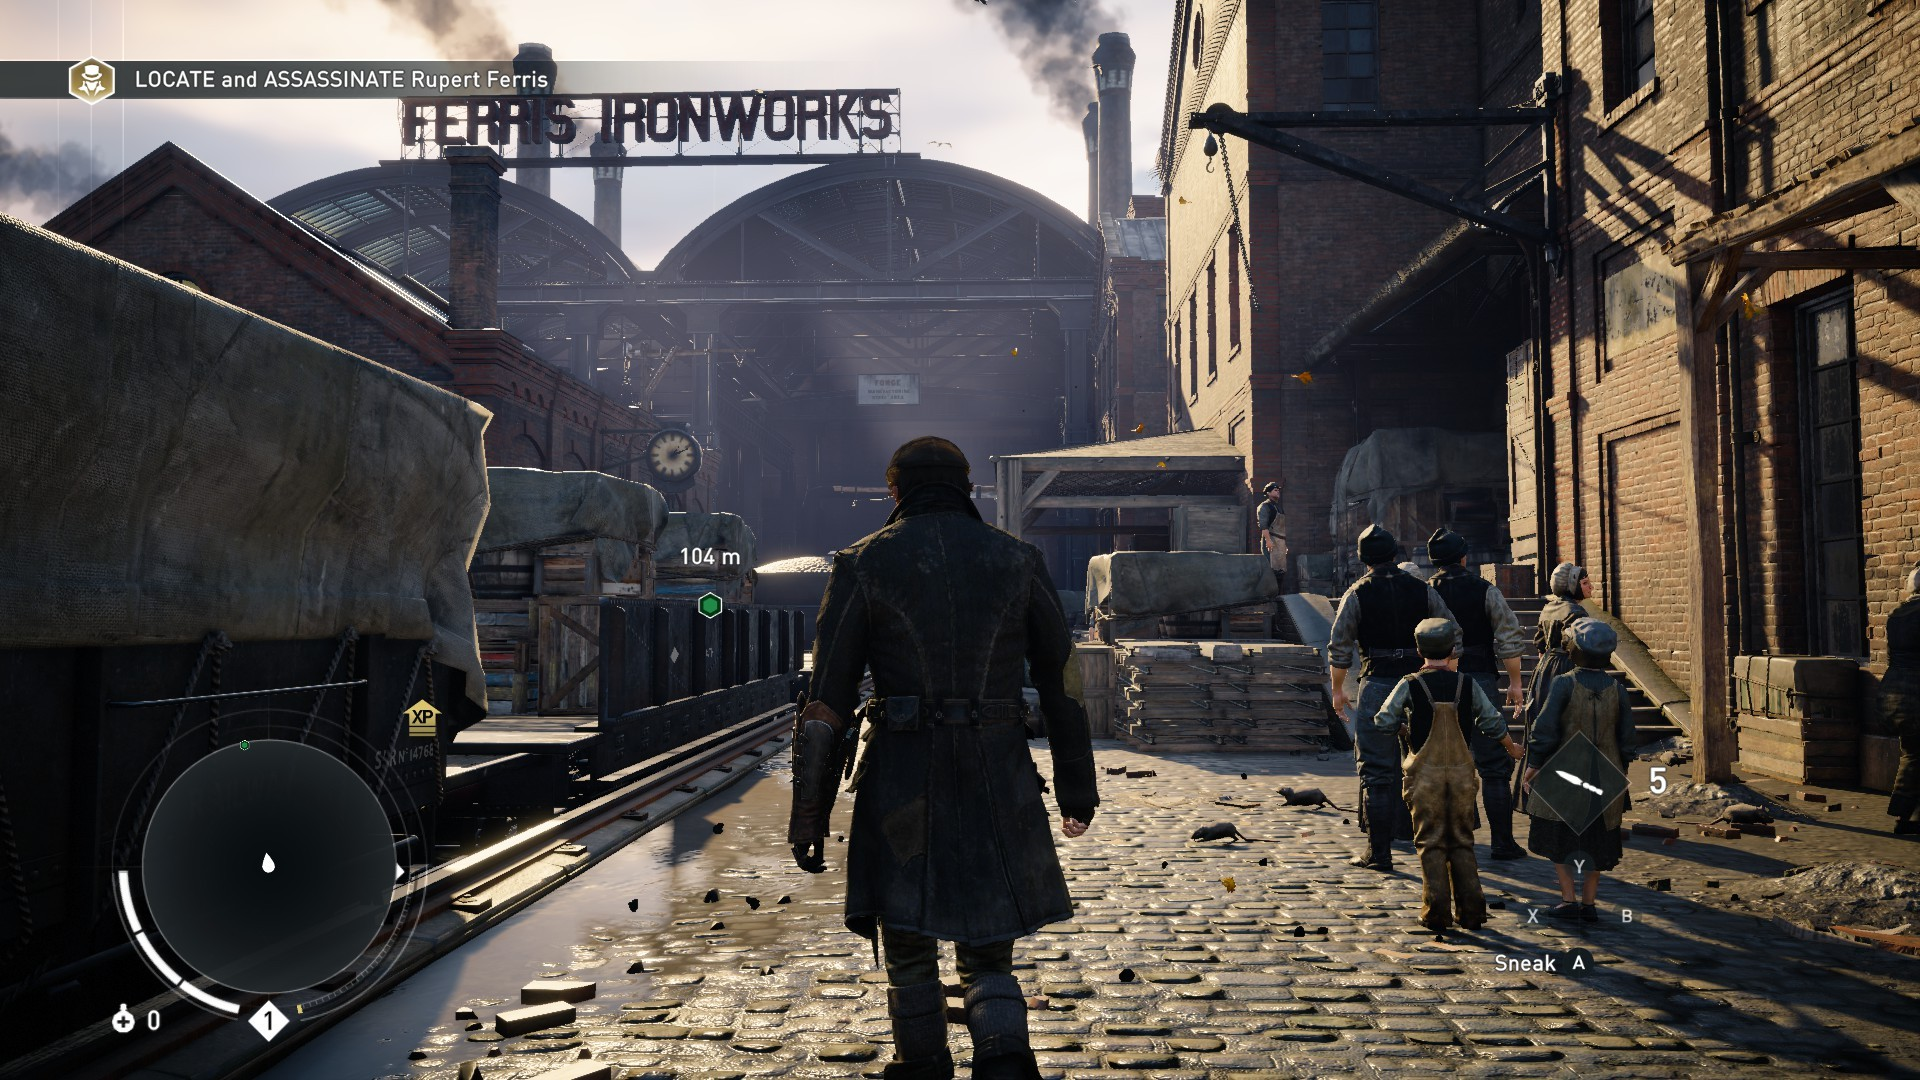 assassins-creed-syndicate2015-11-18-13-33-38-100628991-orig